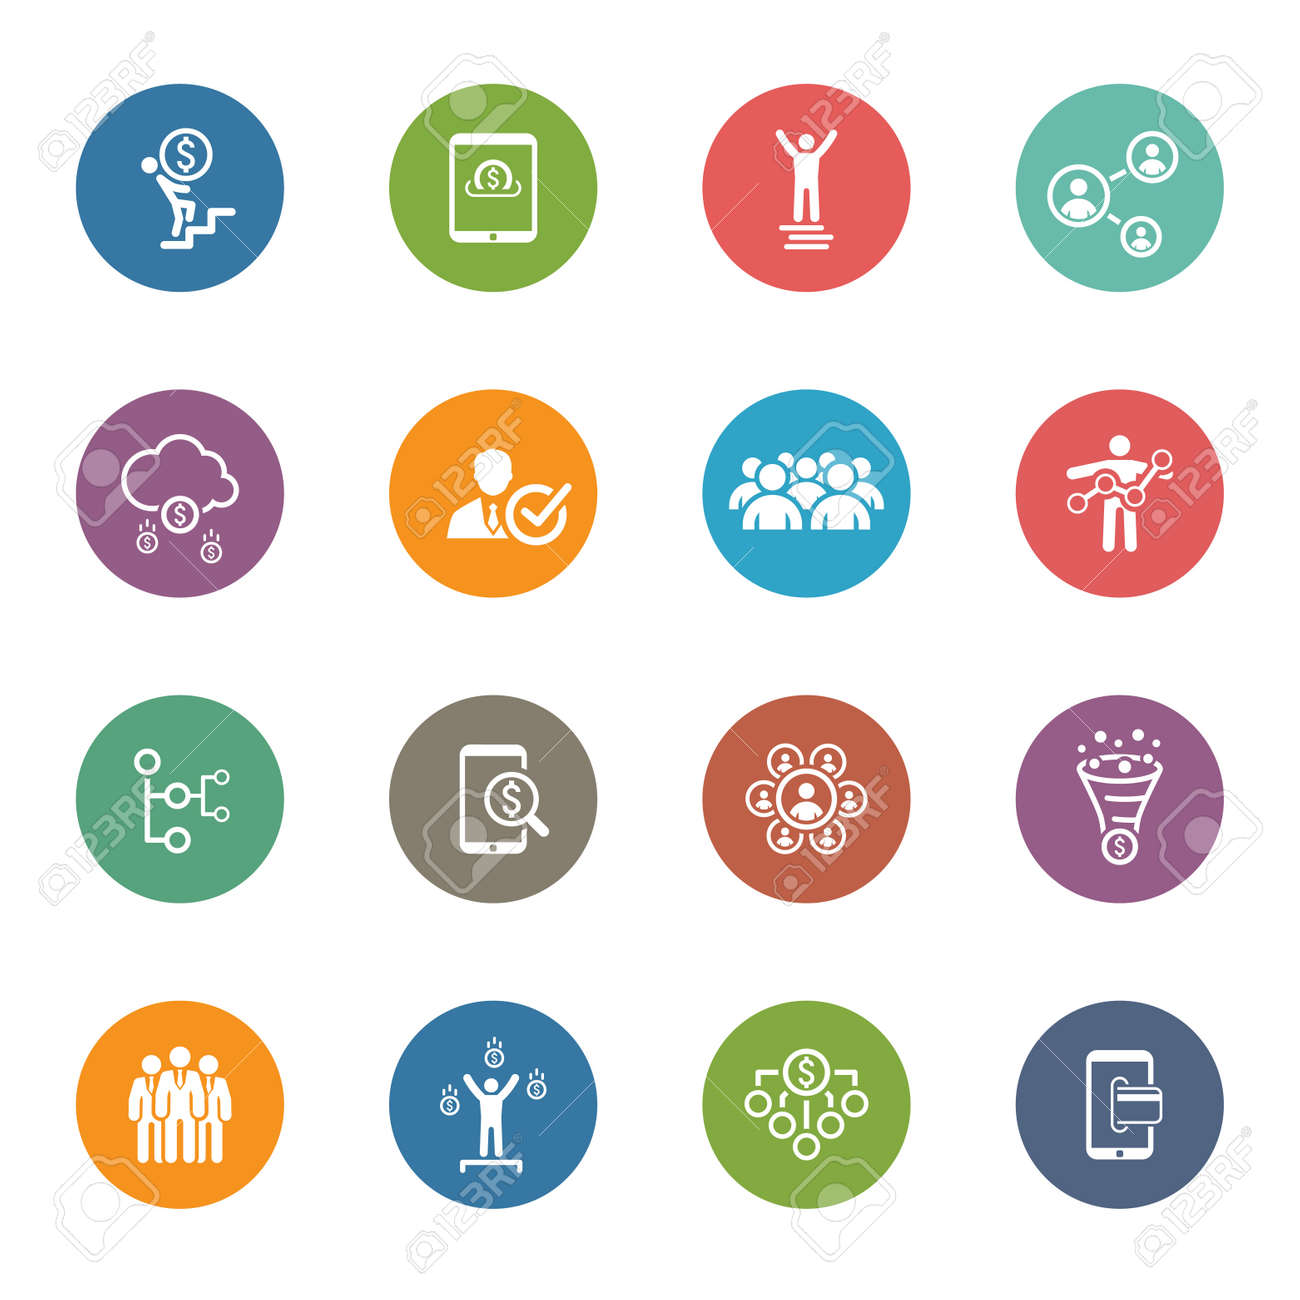 Flat Design Icons Set. Icons for business, management, finance, strategy, planning, analytics, banking, communication, social network, affiliate marketing. - 45248261